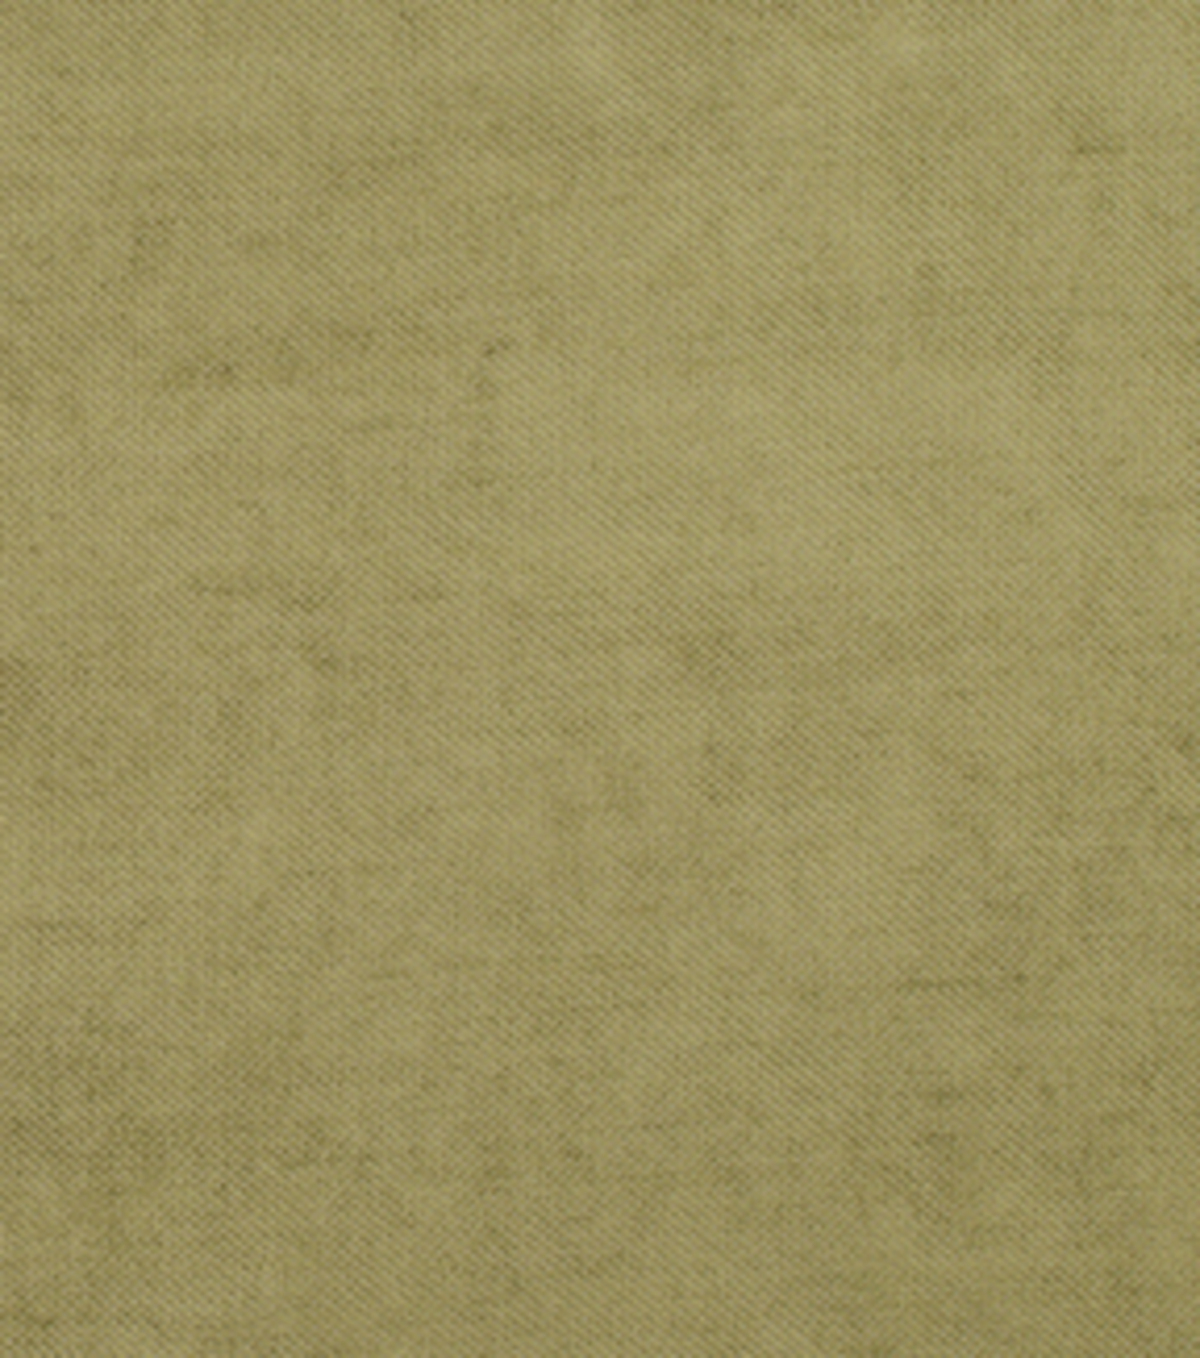 Home Decor 8\u0022x8\u0022 Fabric Swatch-Signature Series Claudel Eucalyptus